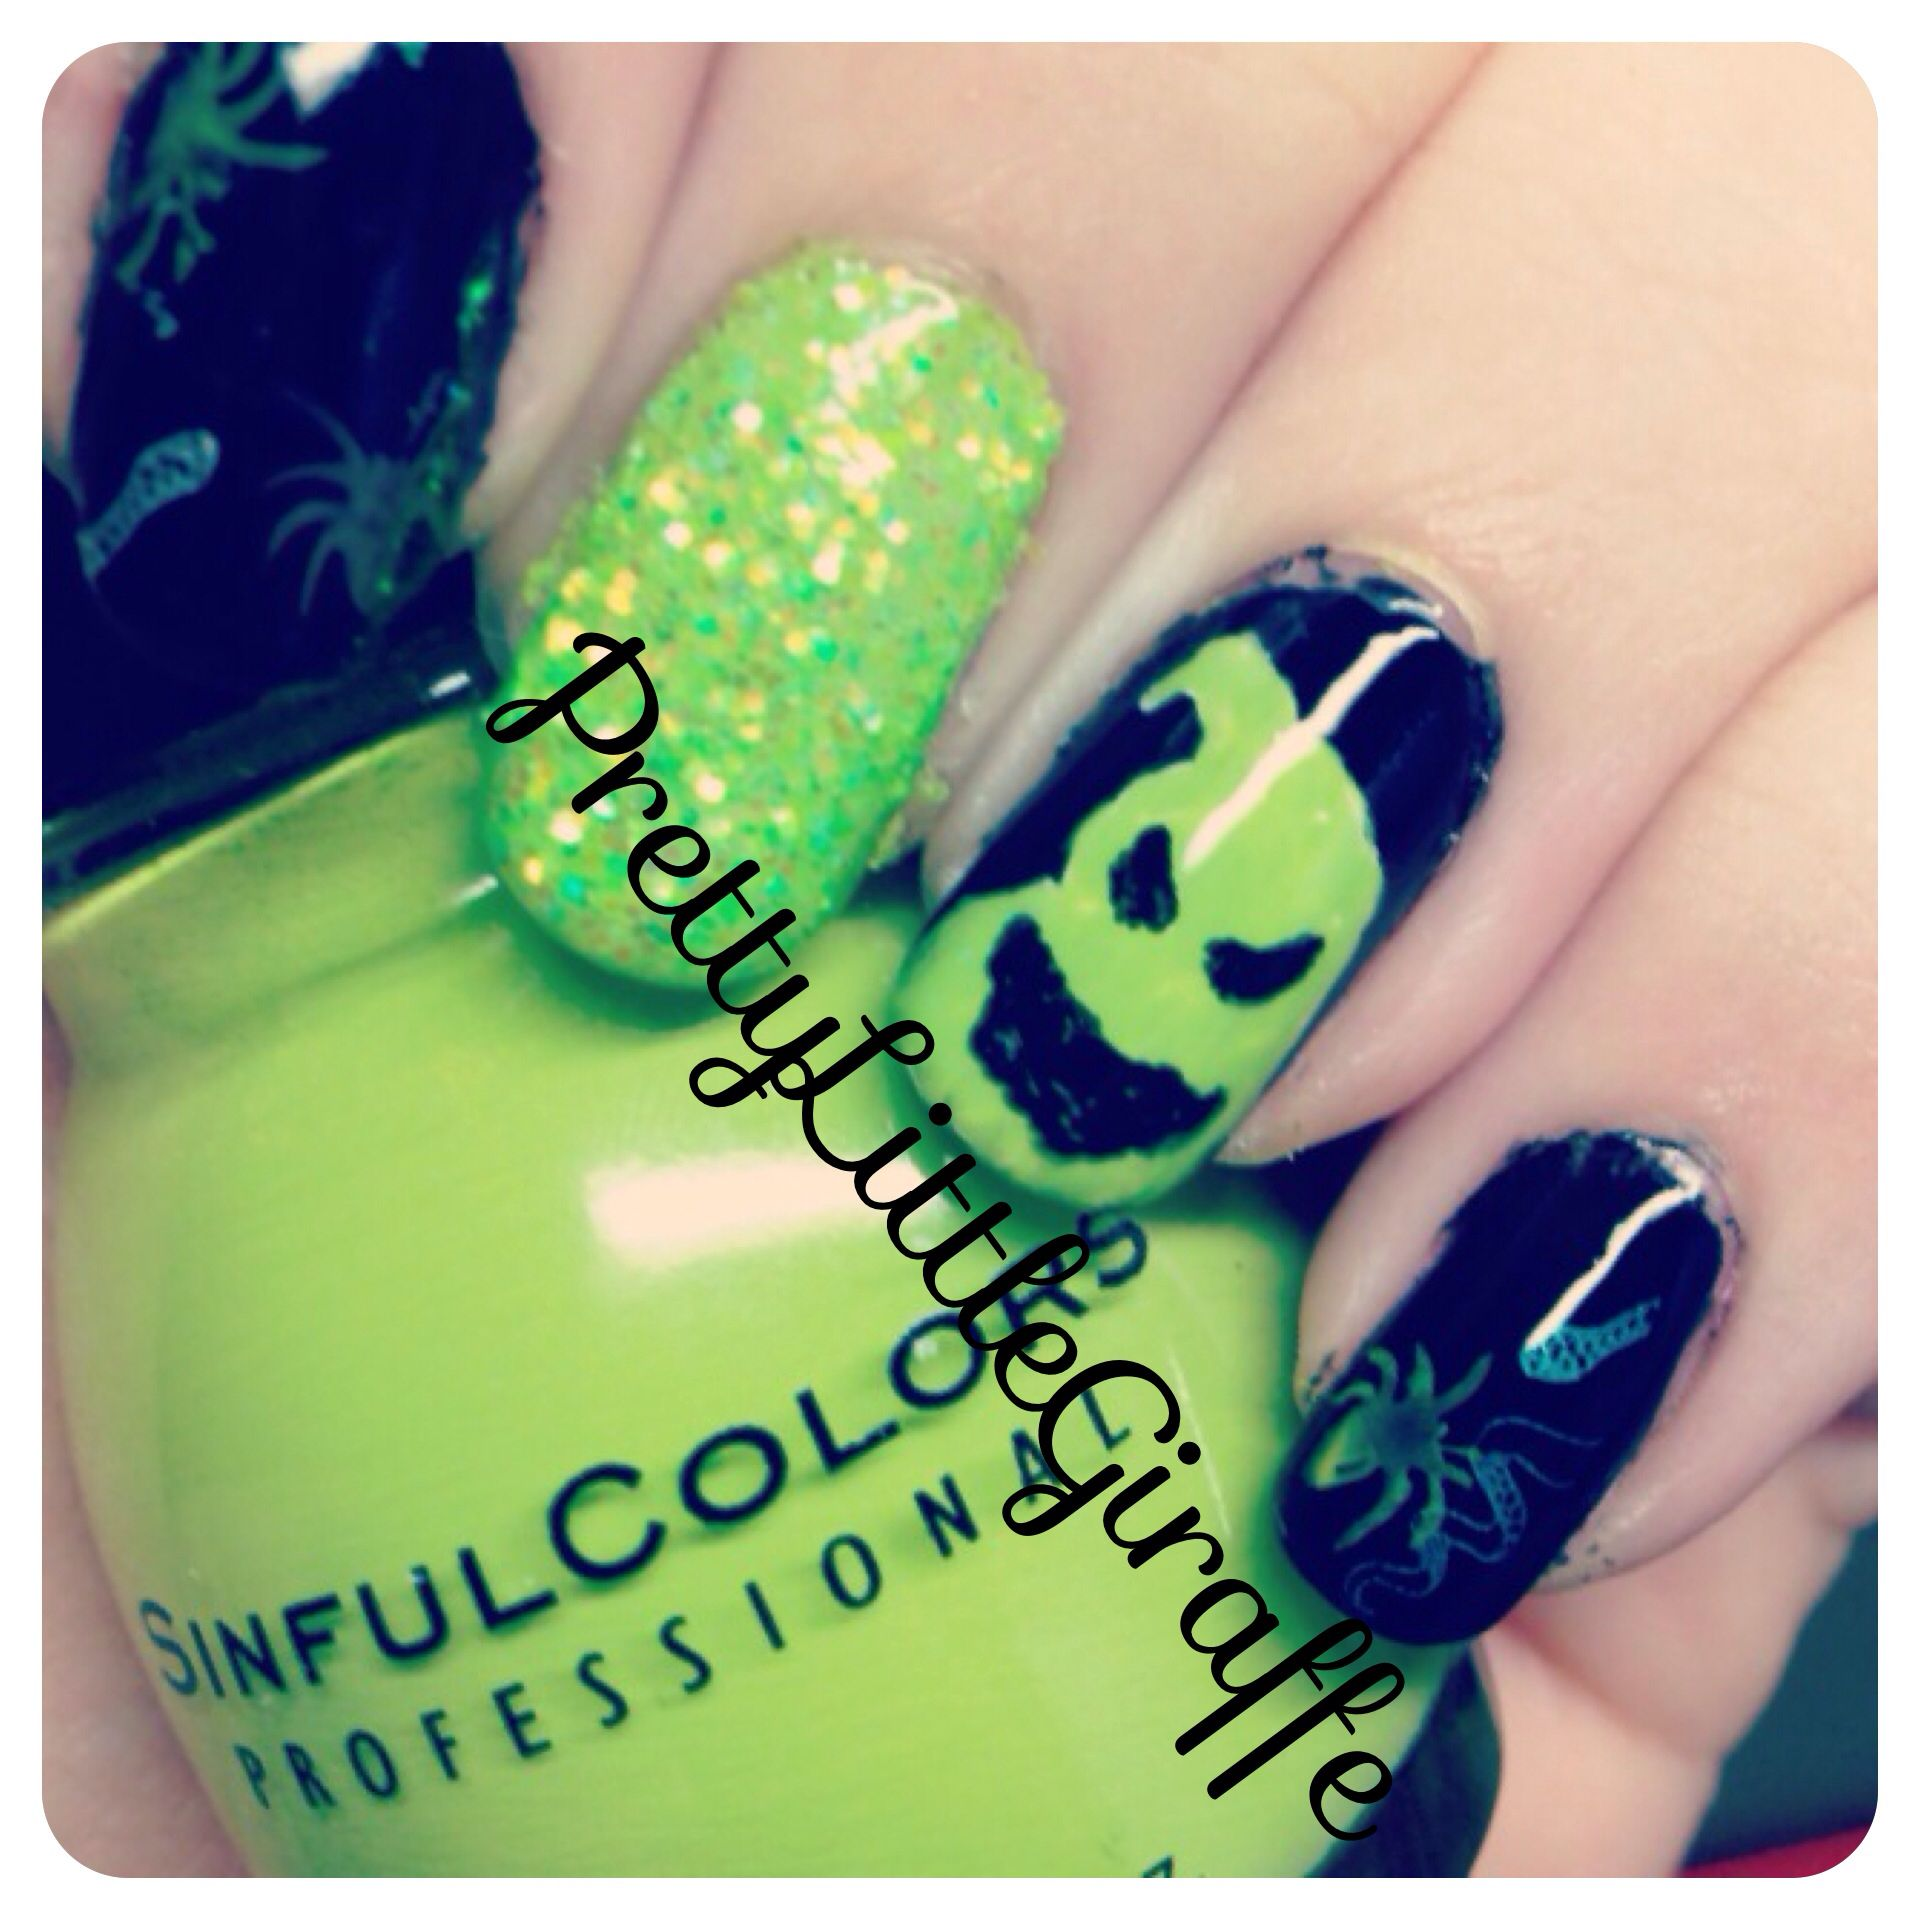 The nightmare before christmas oogie boogie halloween nail ...